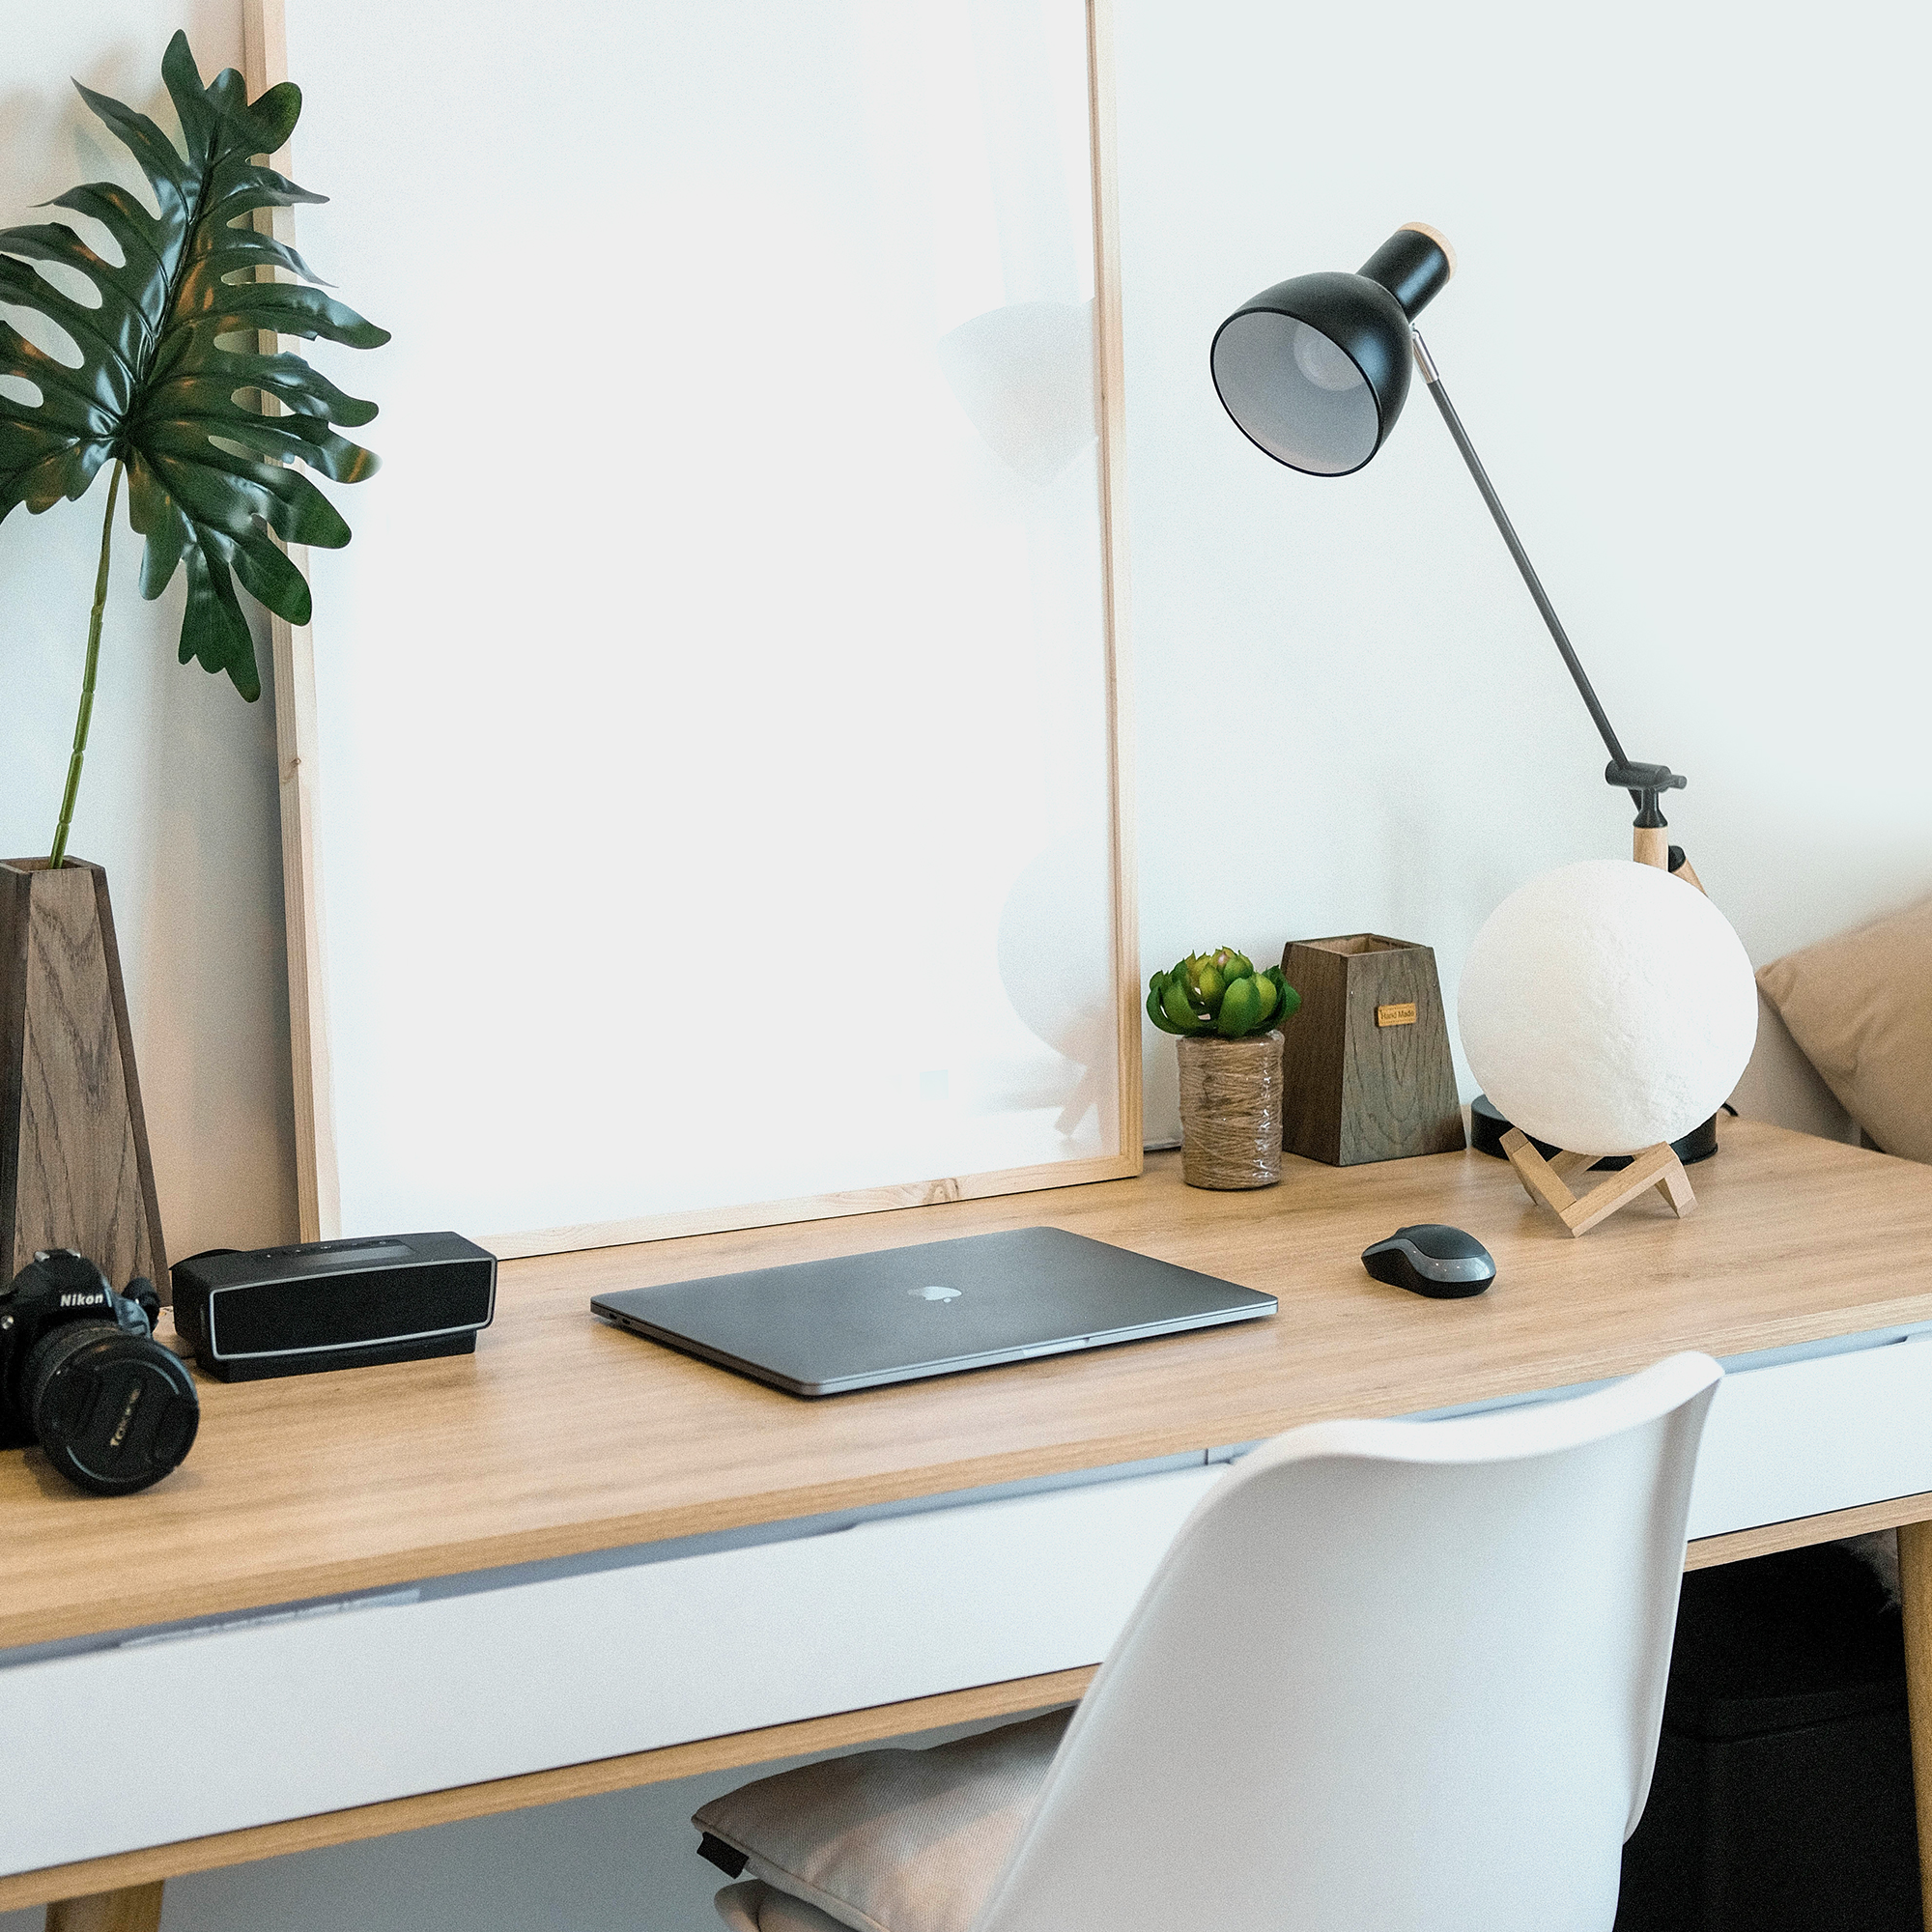 a desk with a laptop, lamp, and plant